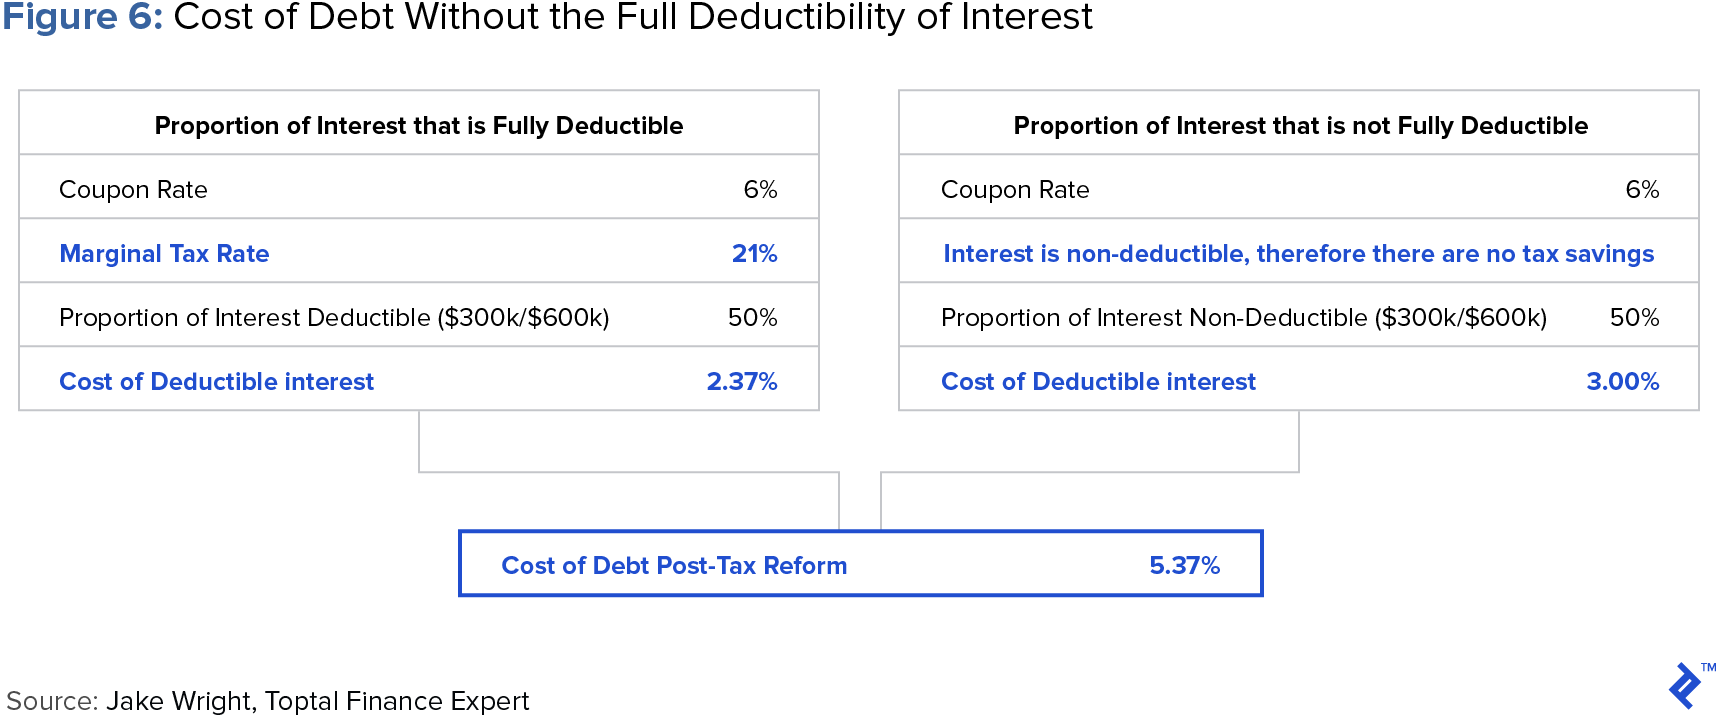 diagram showing the cost of debt without the full deductibility of interest